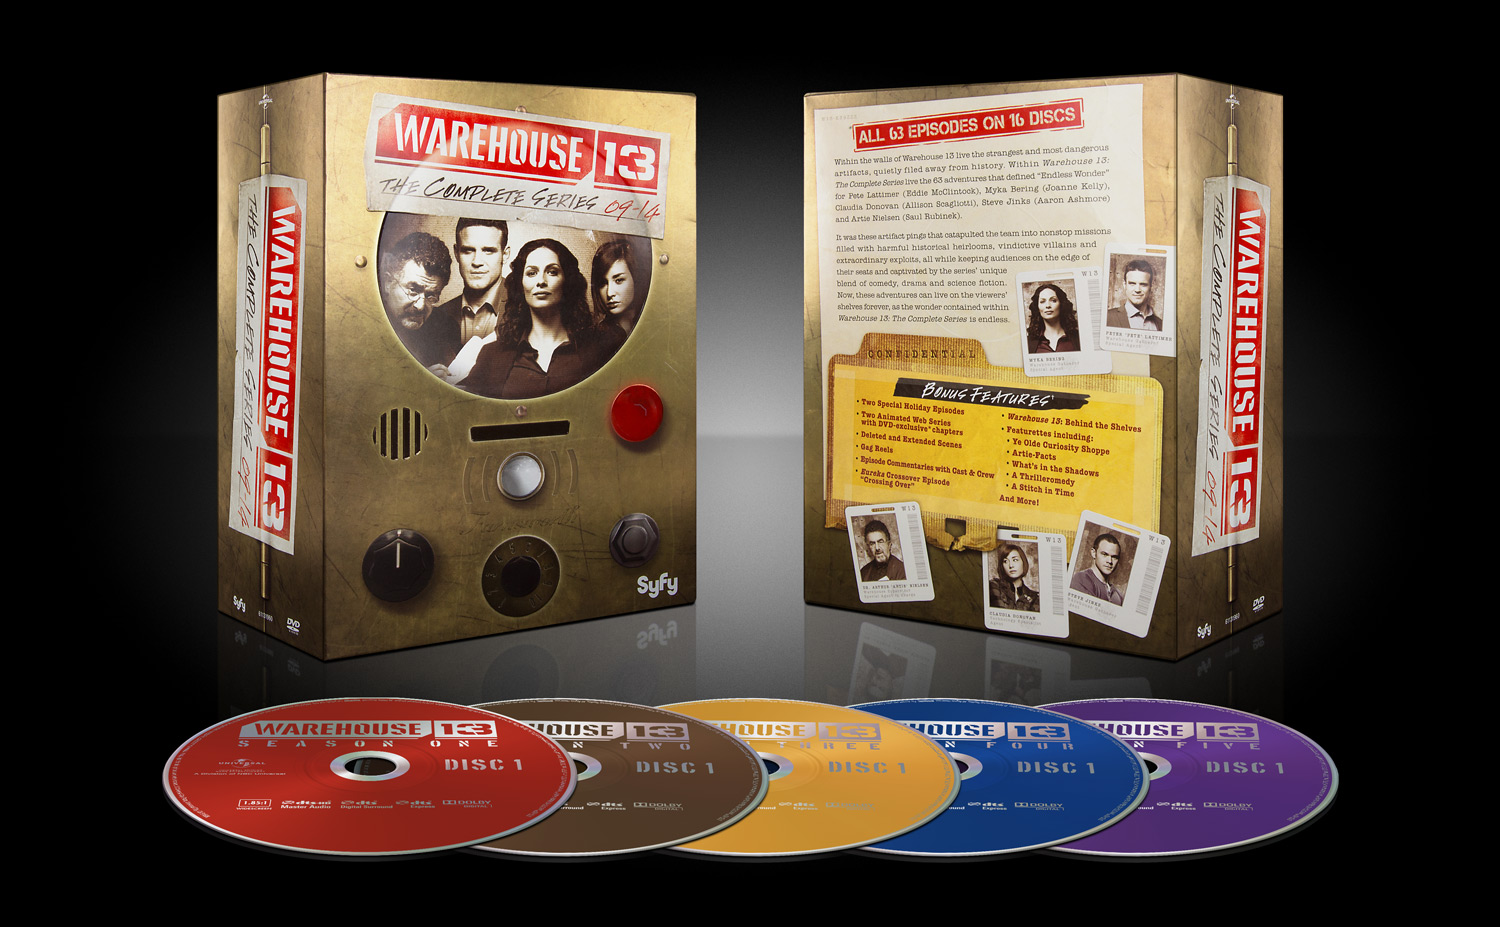 Warehouse13_Packaging_01.jpg